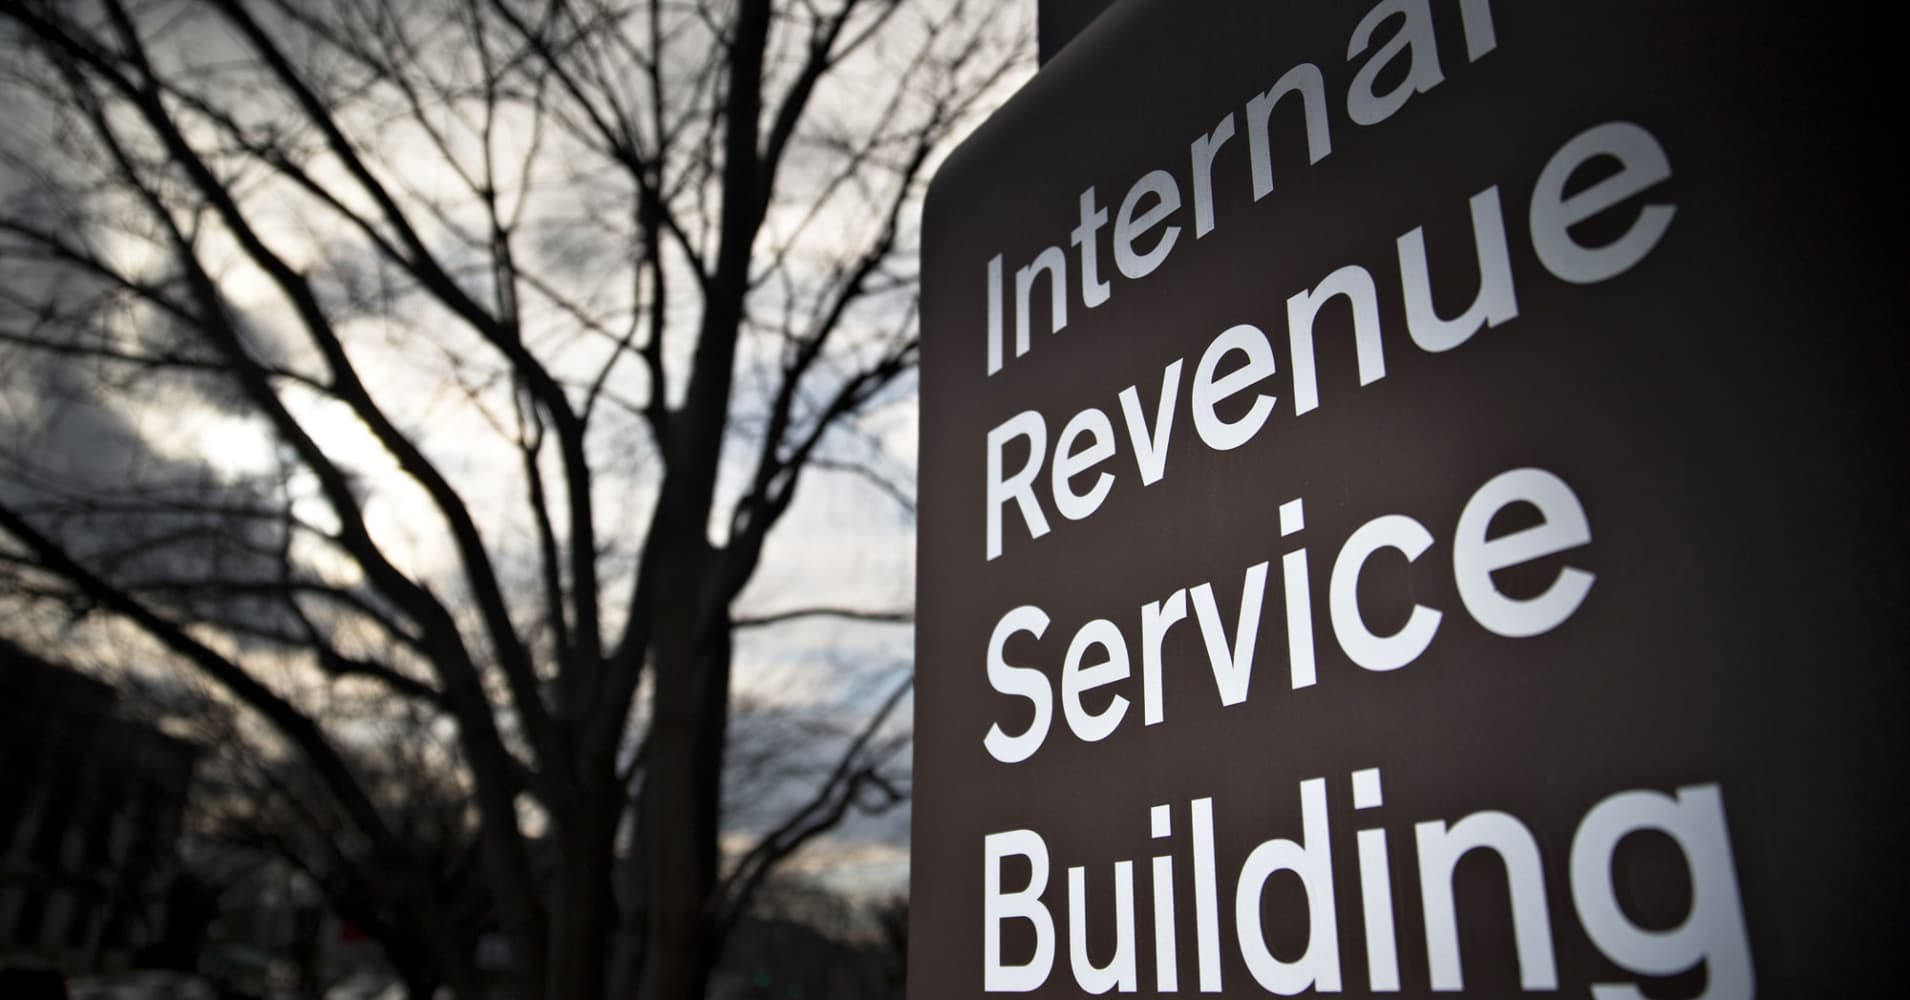 GOP congressman who feels victimized by IRS wants to kill the 'rogue agency' as we know it